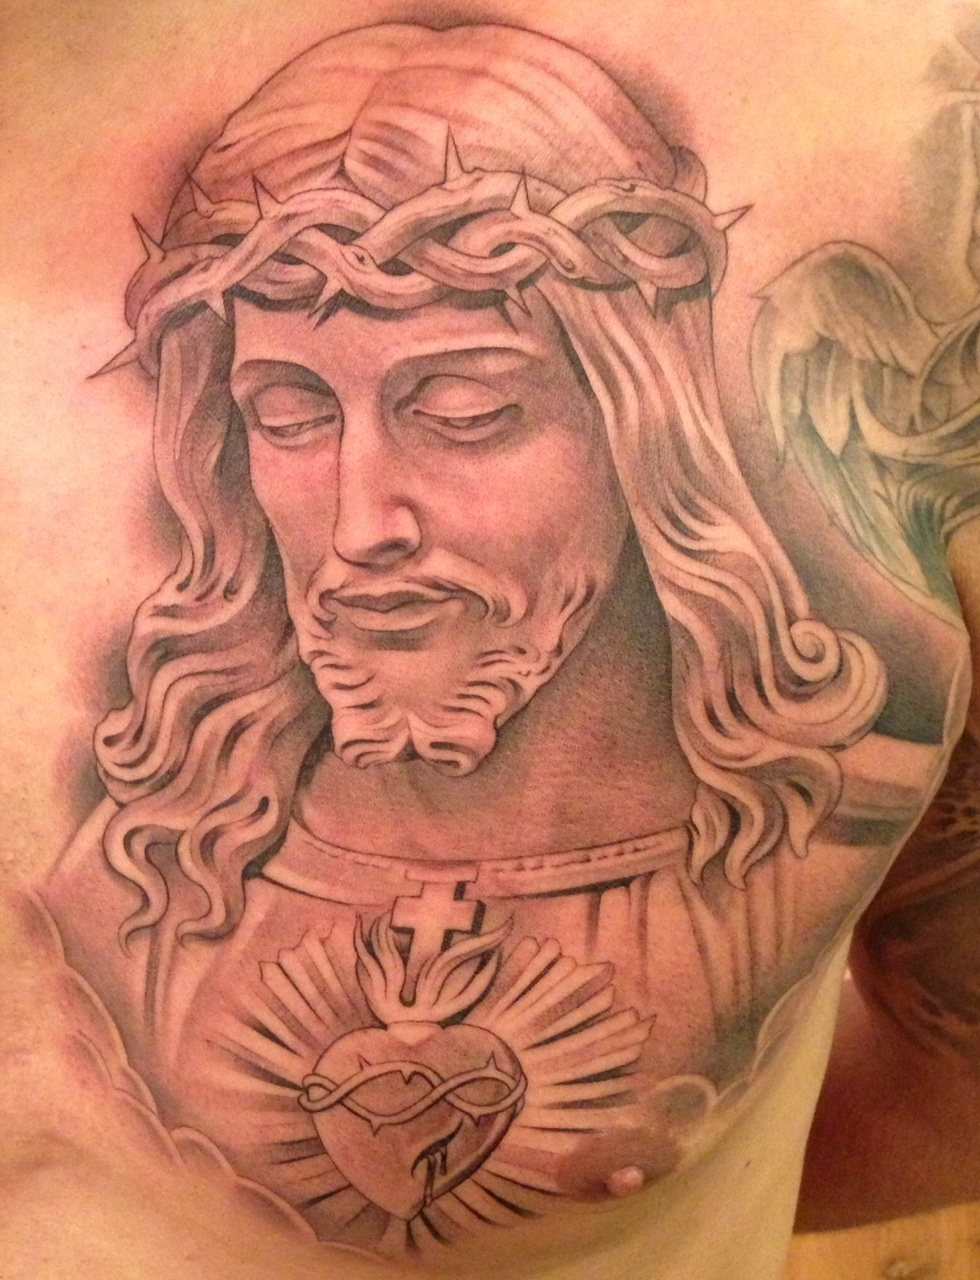 religious chest tattoos designs ideas and meaning tattoos for you. Black Bedroom Furniture Sets. Home Design Ideas